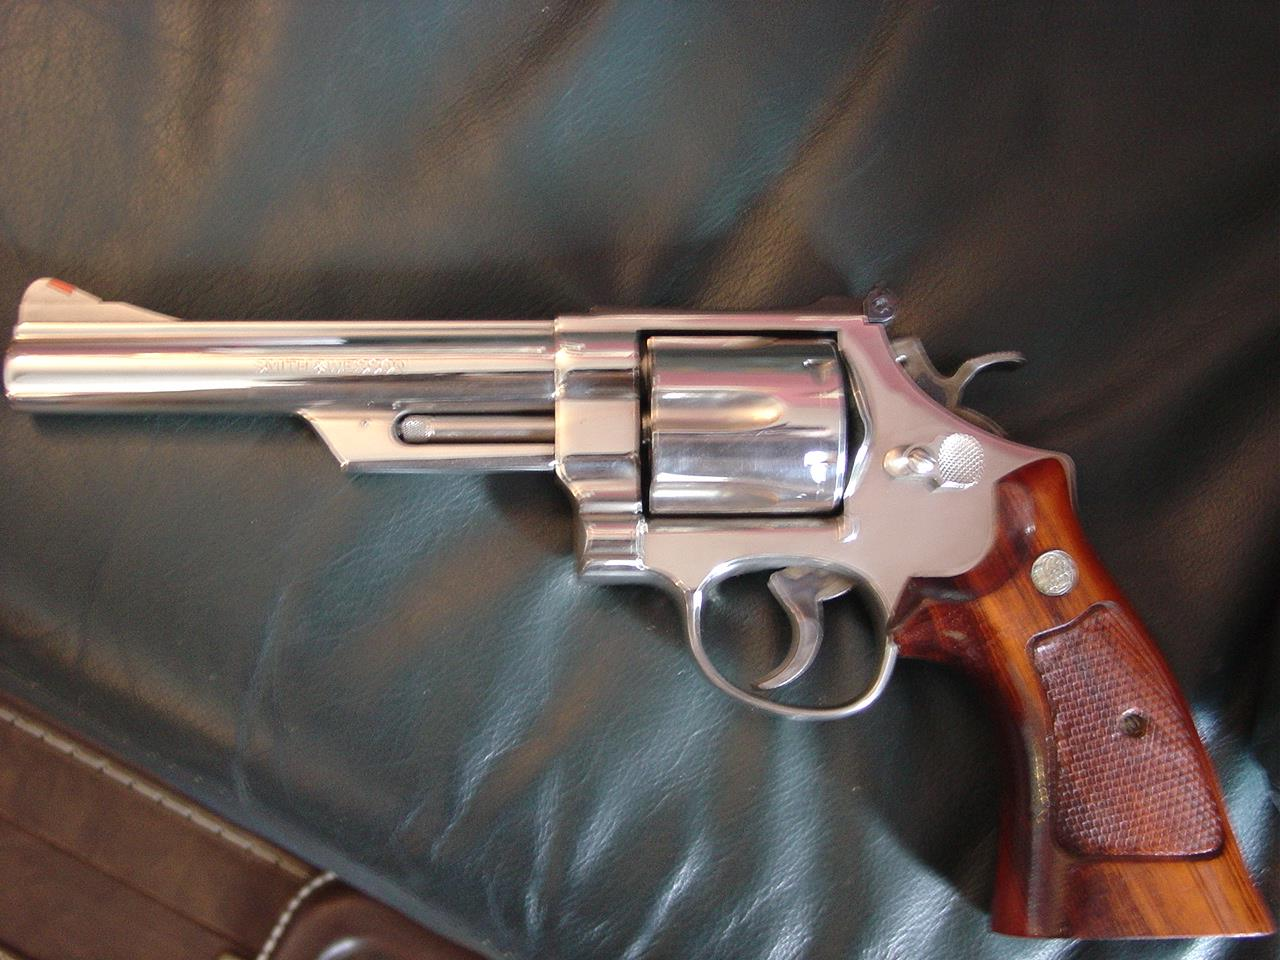 "Smith & Wesson 29-3,bright mirror nickel,6"",44 magnum,wood grips,& heavy glass & wood Pres case- made 1983  Guns > Pistols > Smith & Wesson Revolvers > Full Frame Revolver"